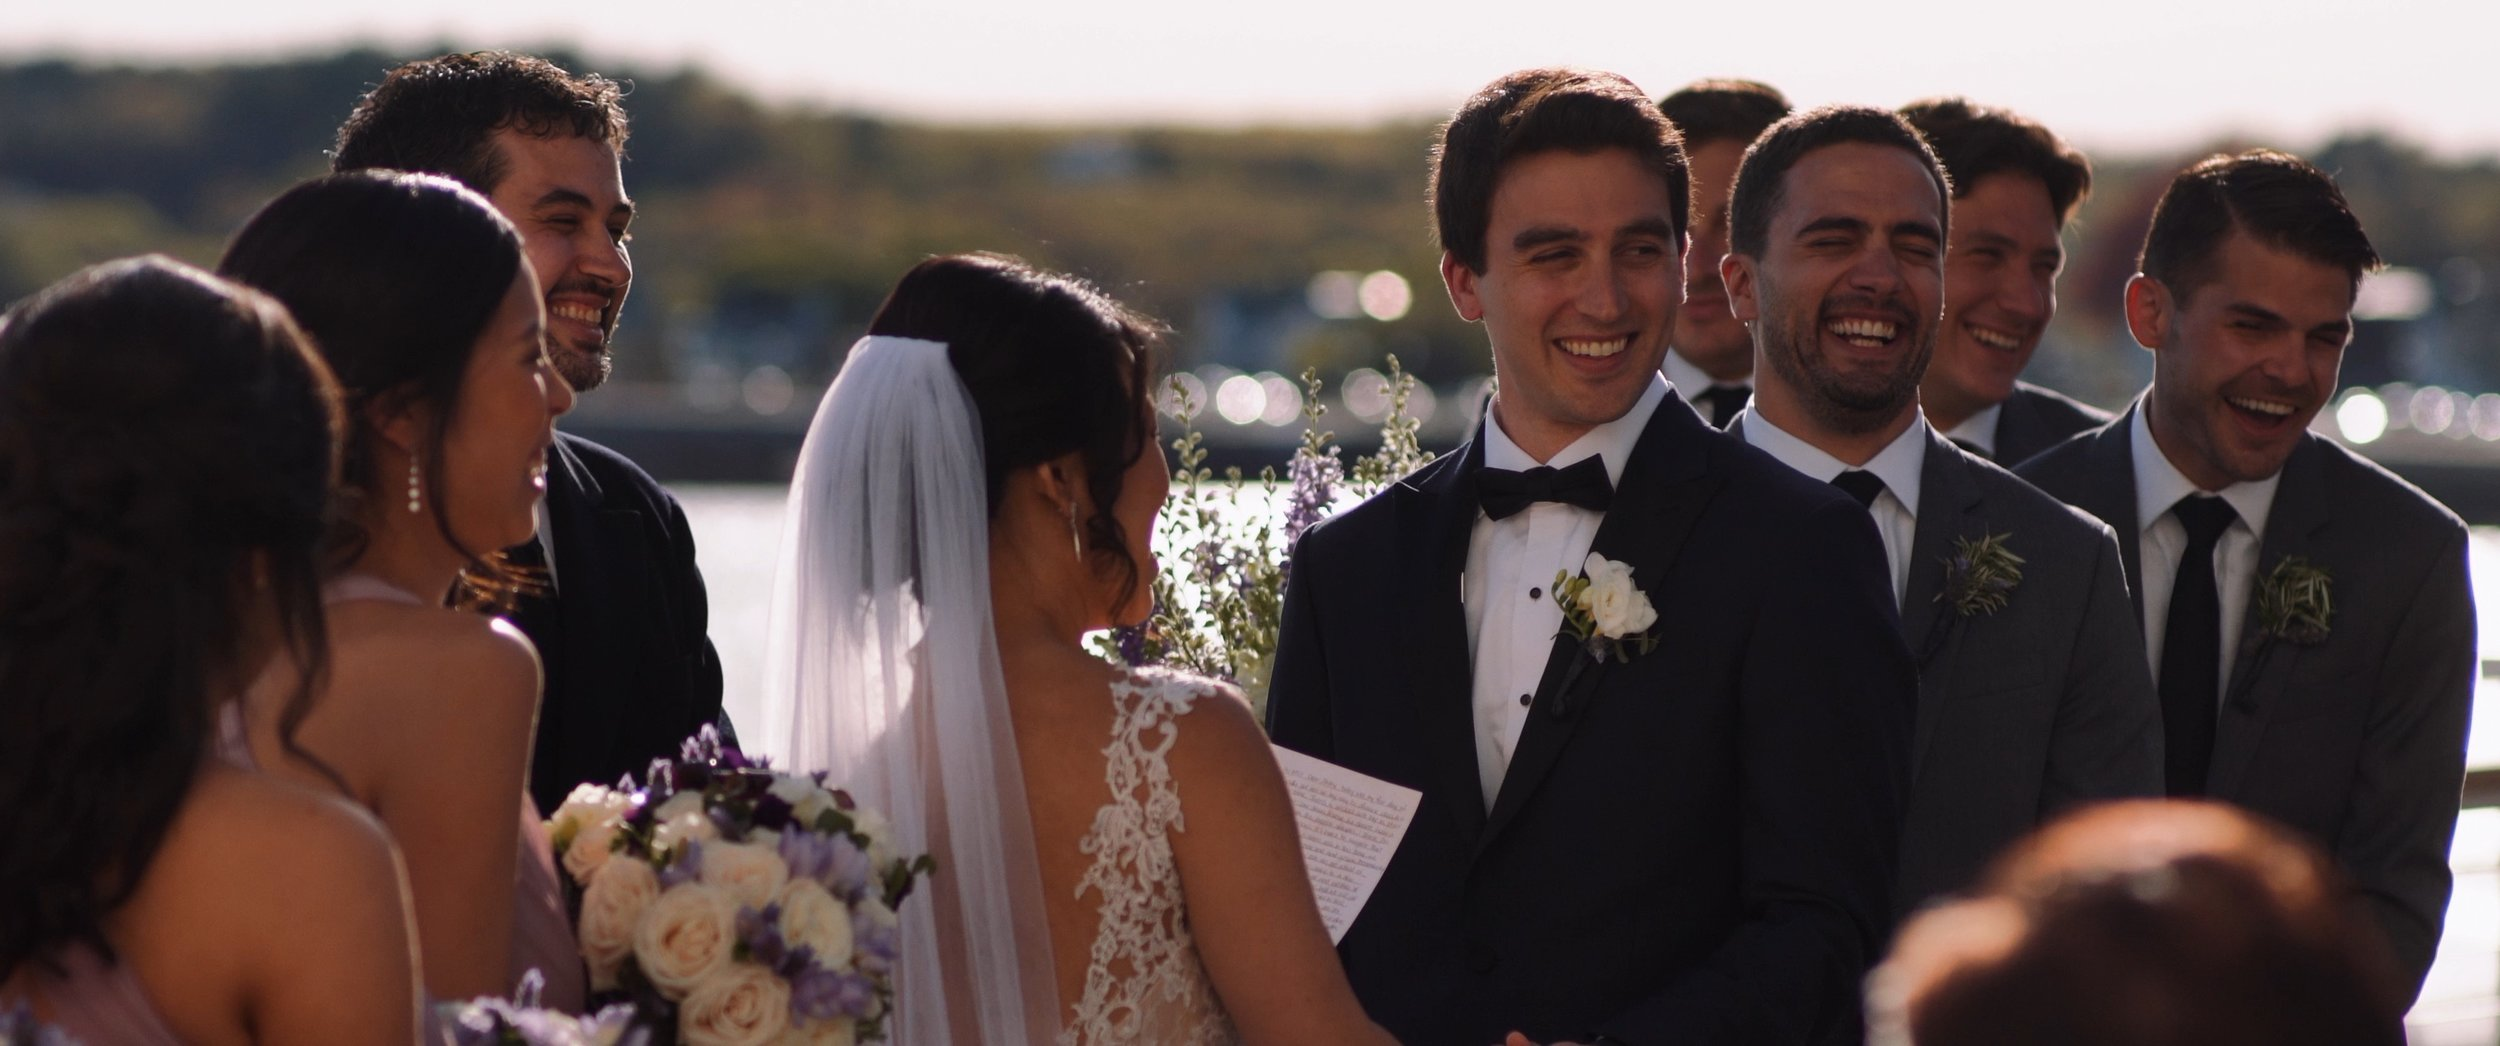 Smiling at vows.jpeg